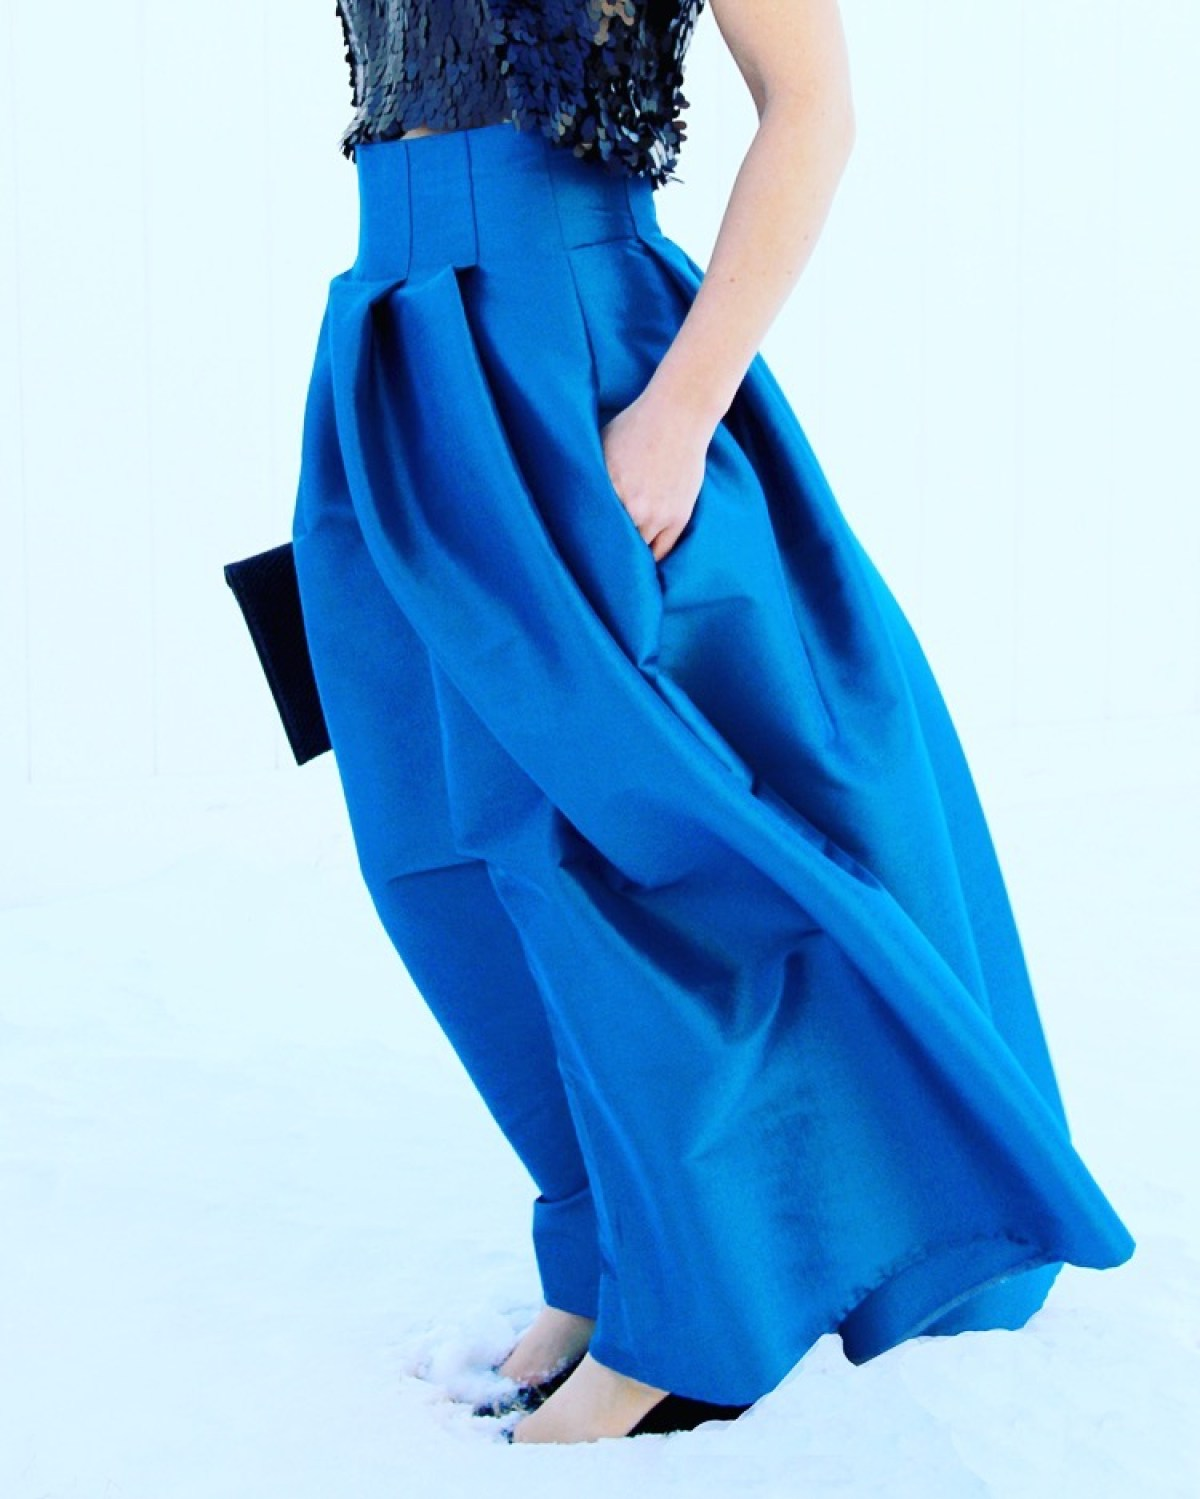 10 Free DIY Skirt Sewing Patterns - Wedding Guest Friendly Skirts! - Top Stitched Pleat Maxi Skirt DIY - from Me Sew Crazy